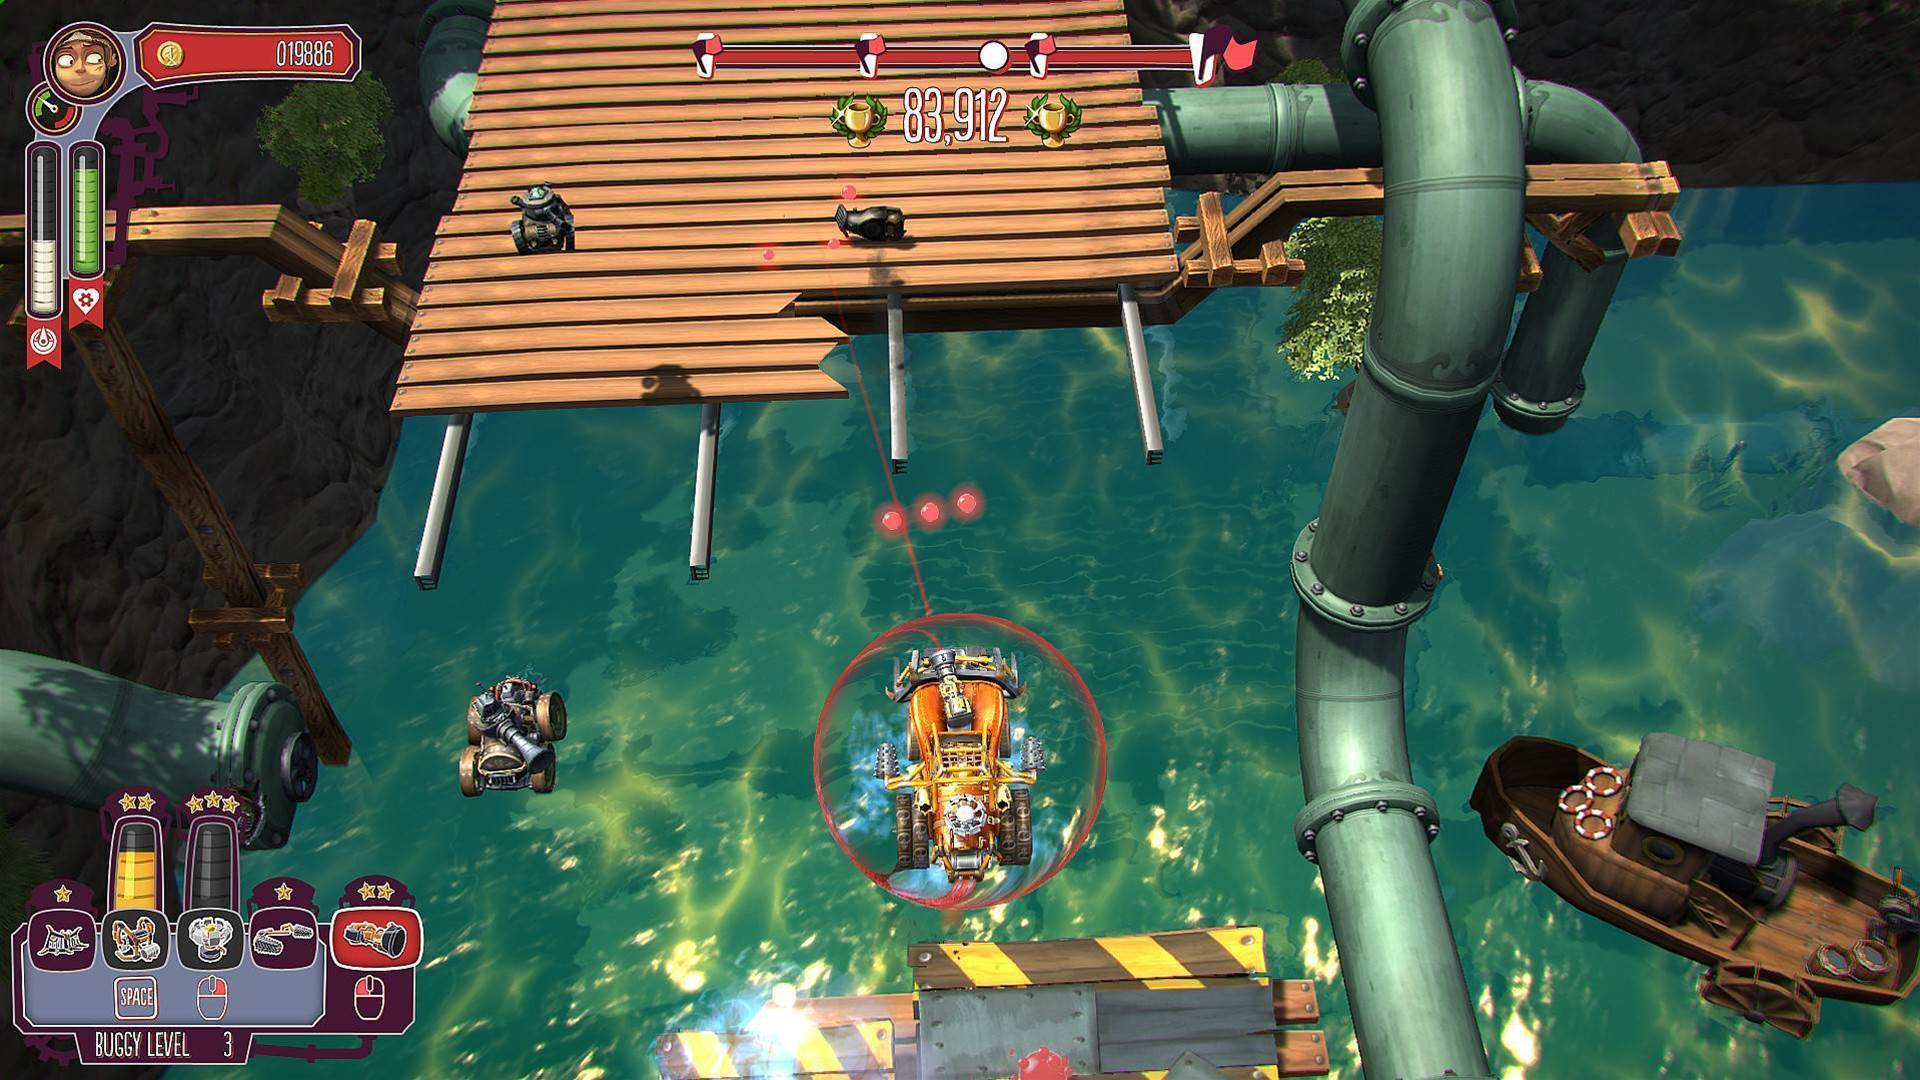 Pressure Overdrive looks like Micro Machines crossed with... something else fun?